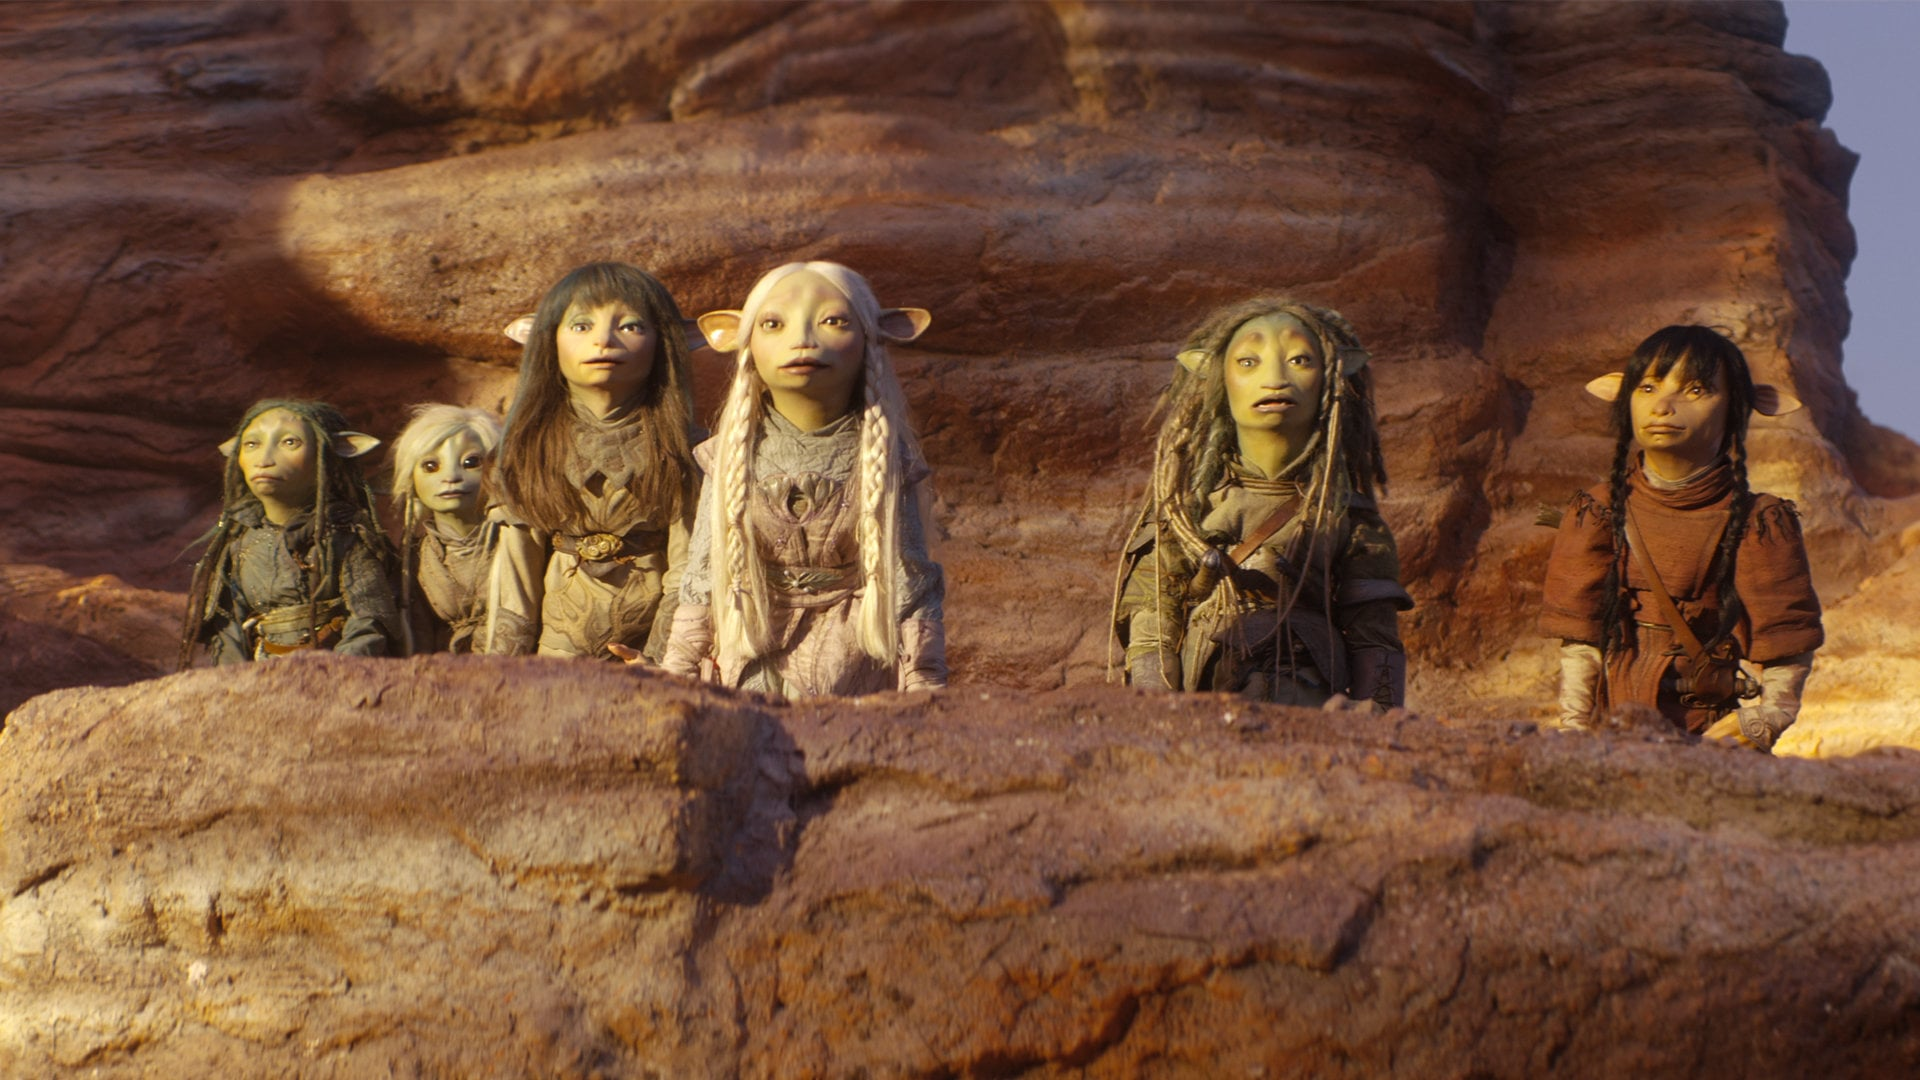 Deet, Rian, Brea and Gurjin are all lined up along the edge of a cliff with two other Gelflings.